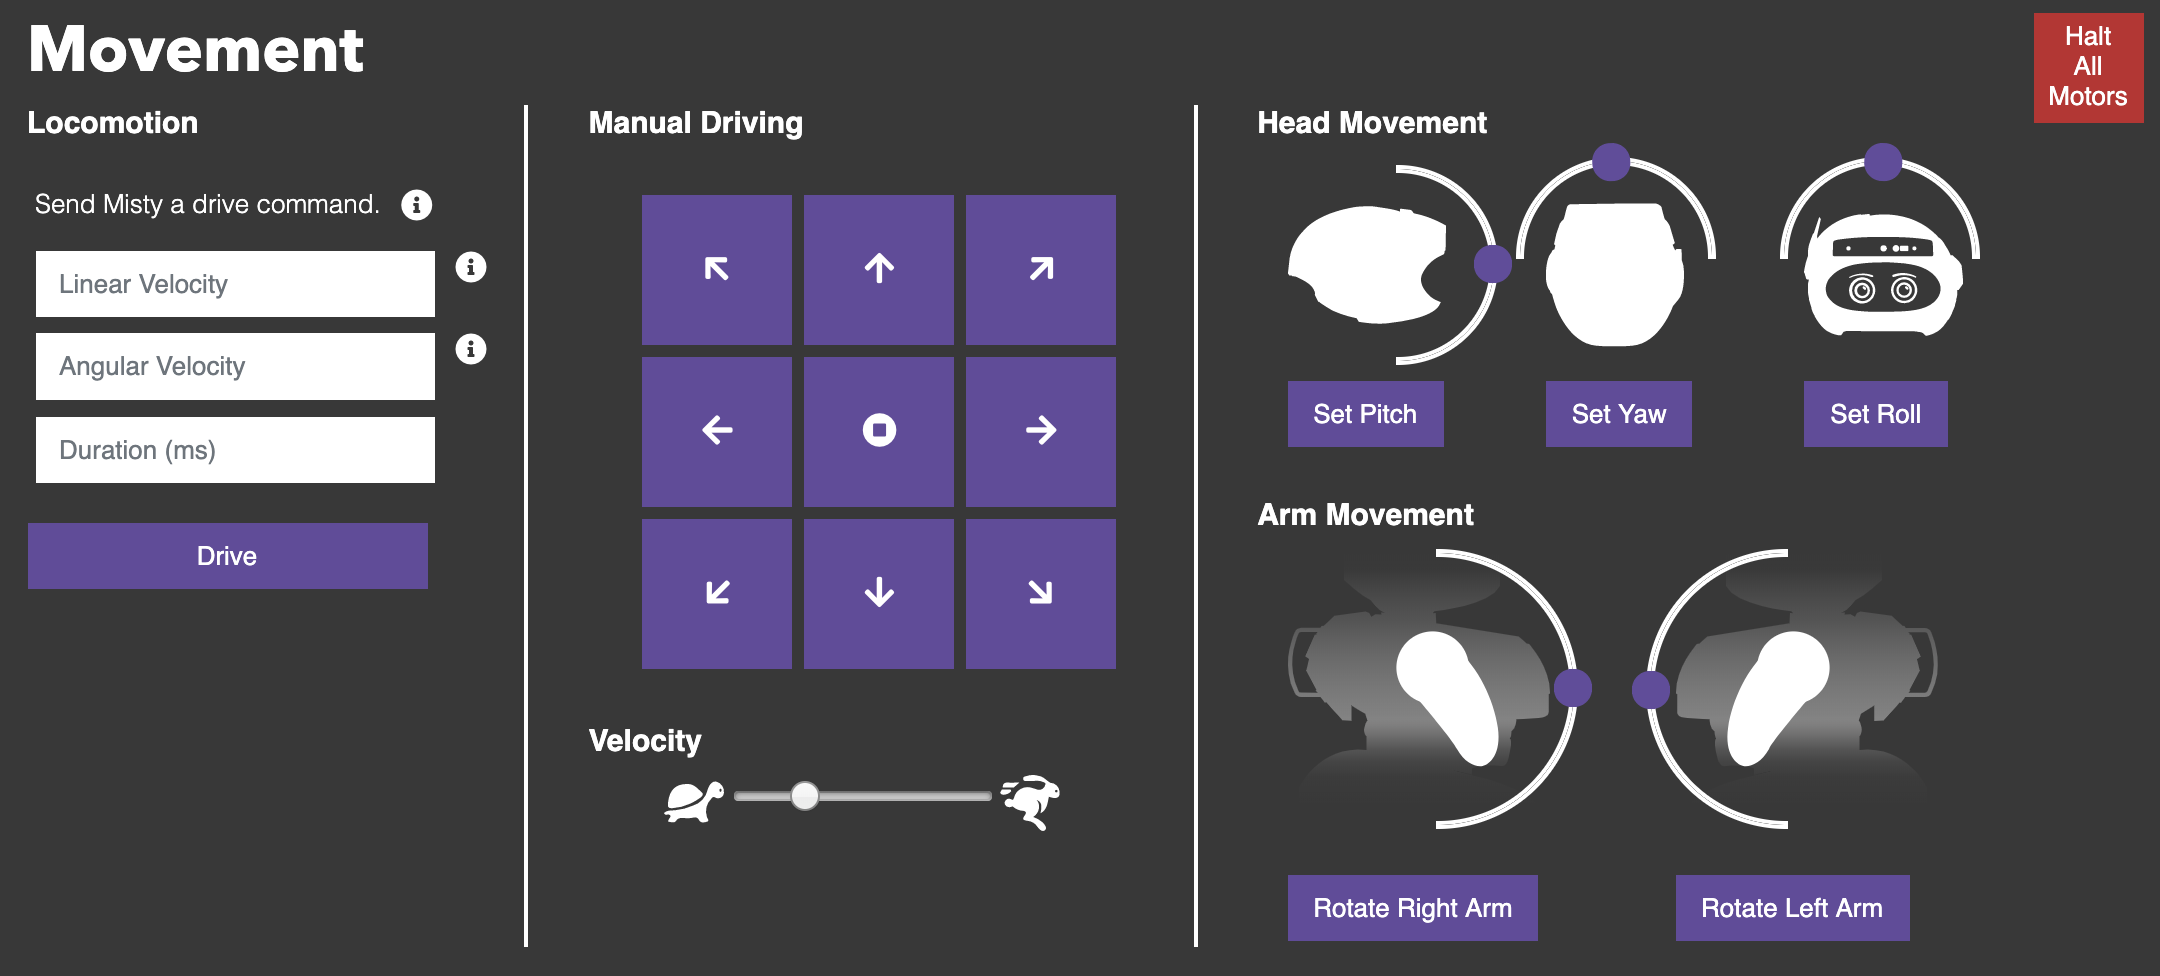 Movement controls